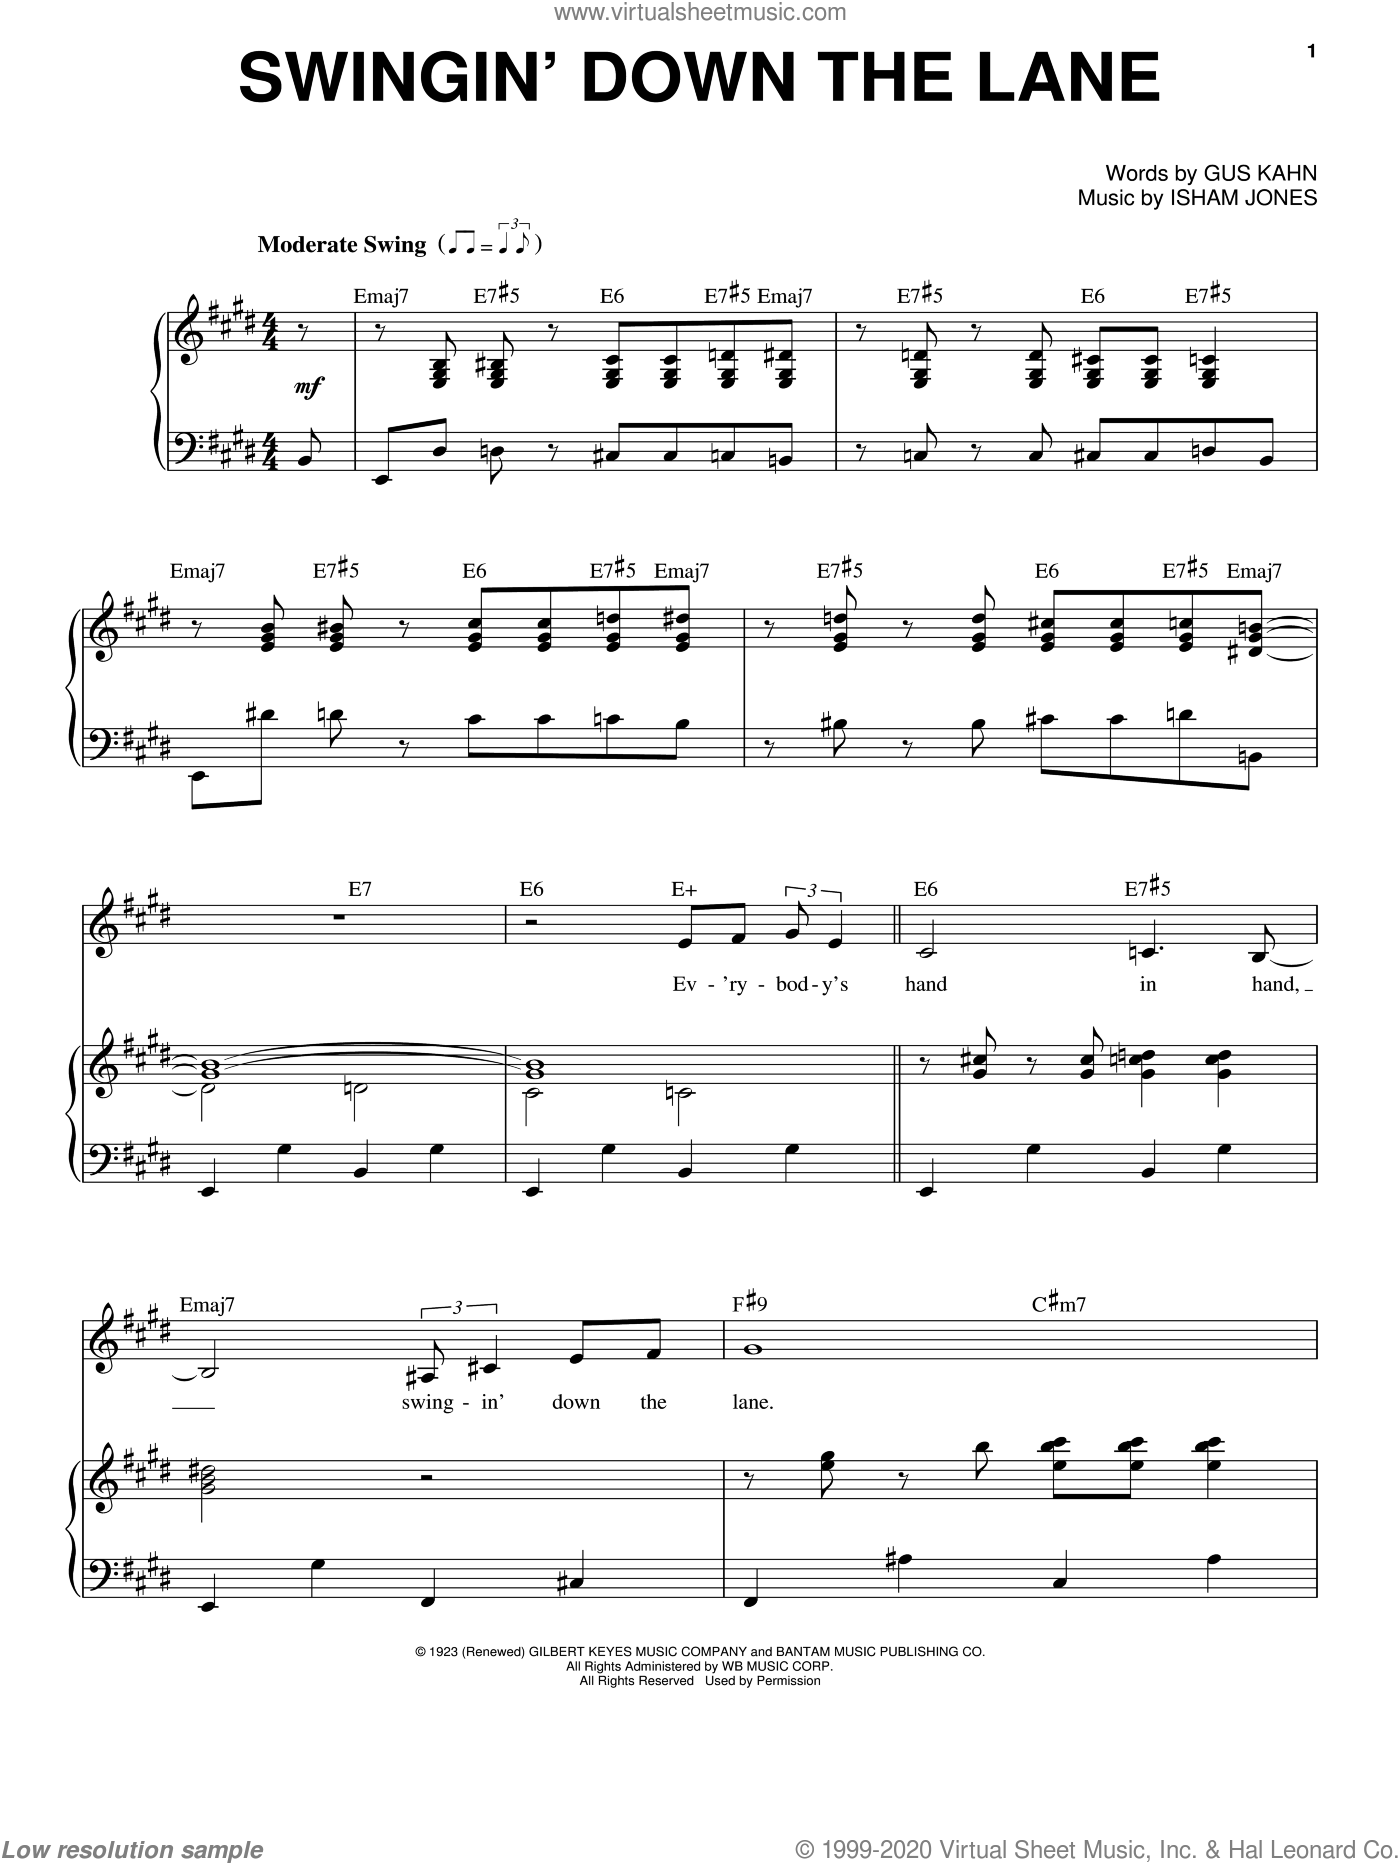 Swingin' Down The Lane sheet music for voice and piano by Frank Sinatra, Gus Kahn and Isham Jones, intermediate skill level